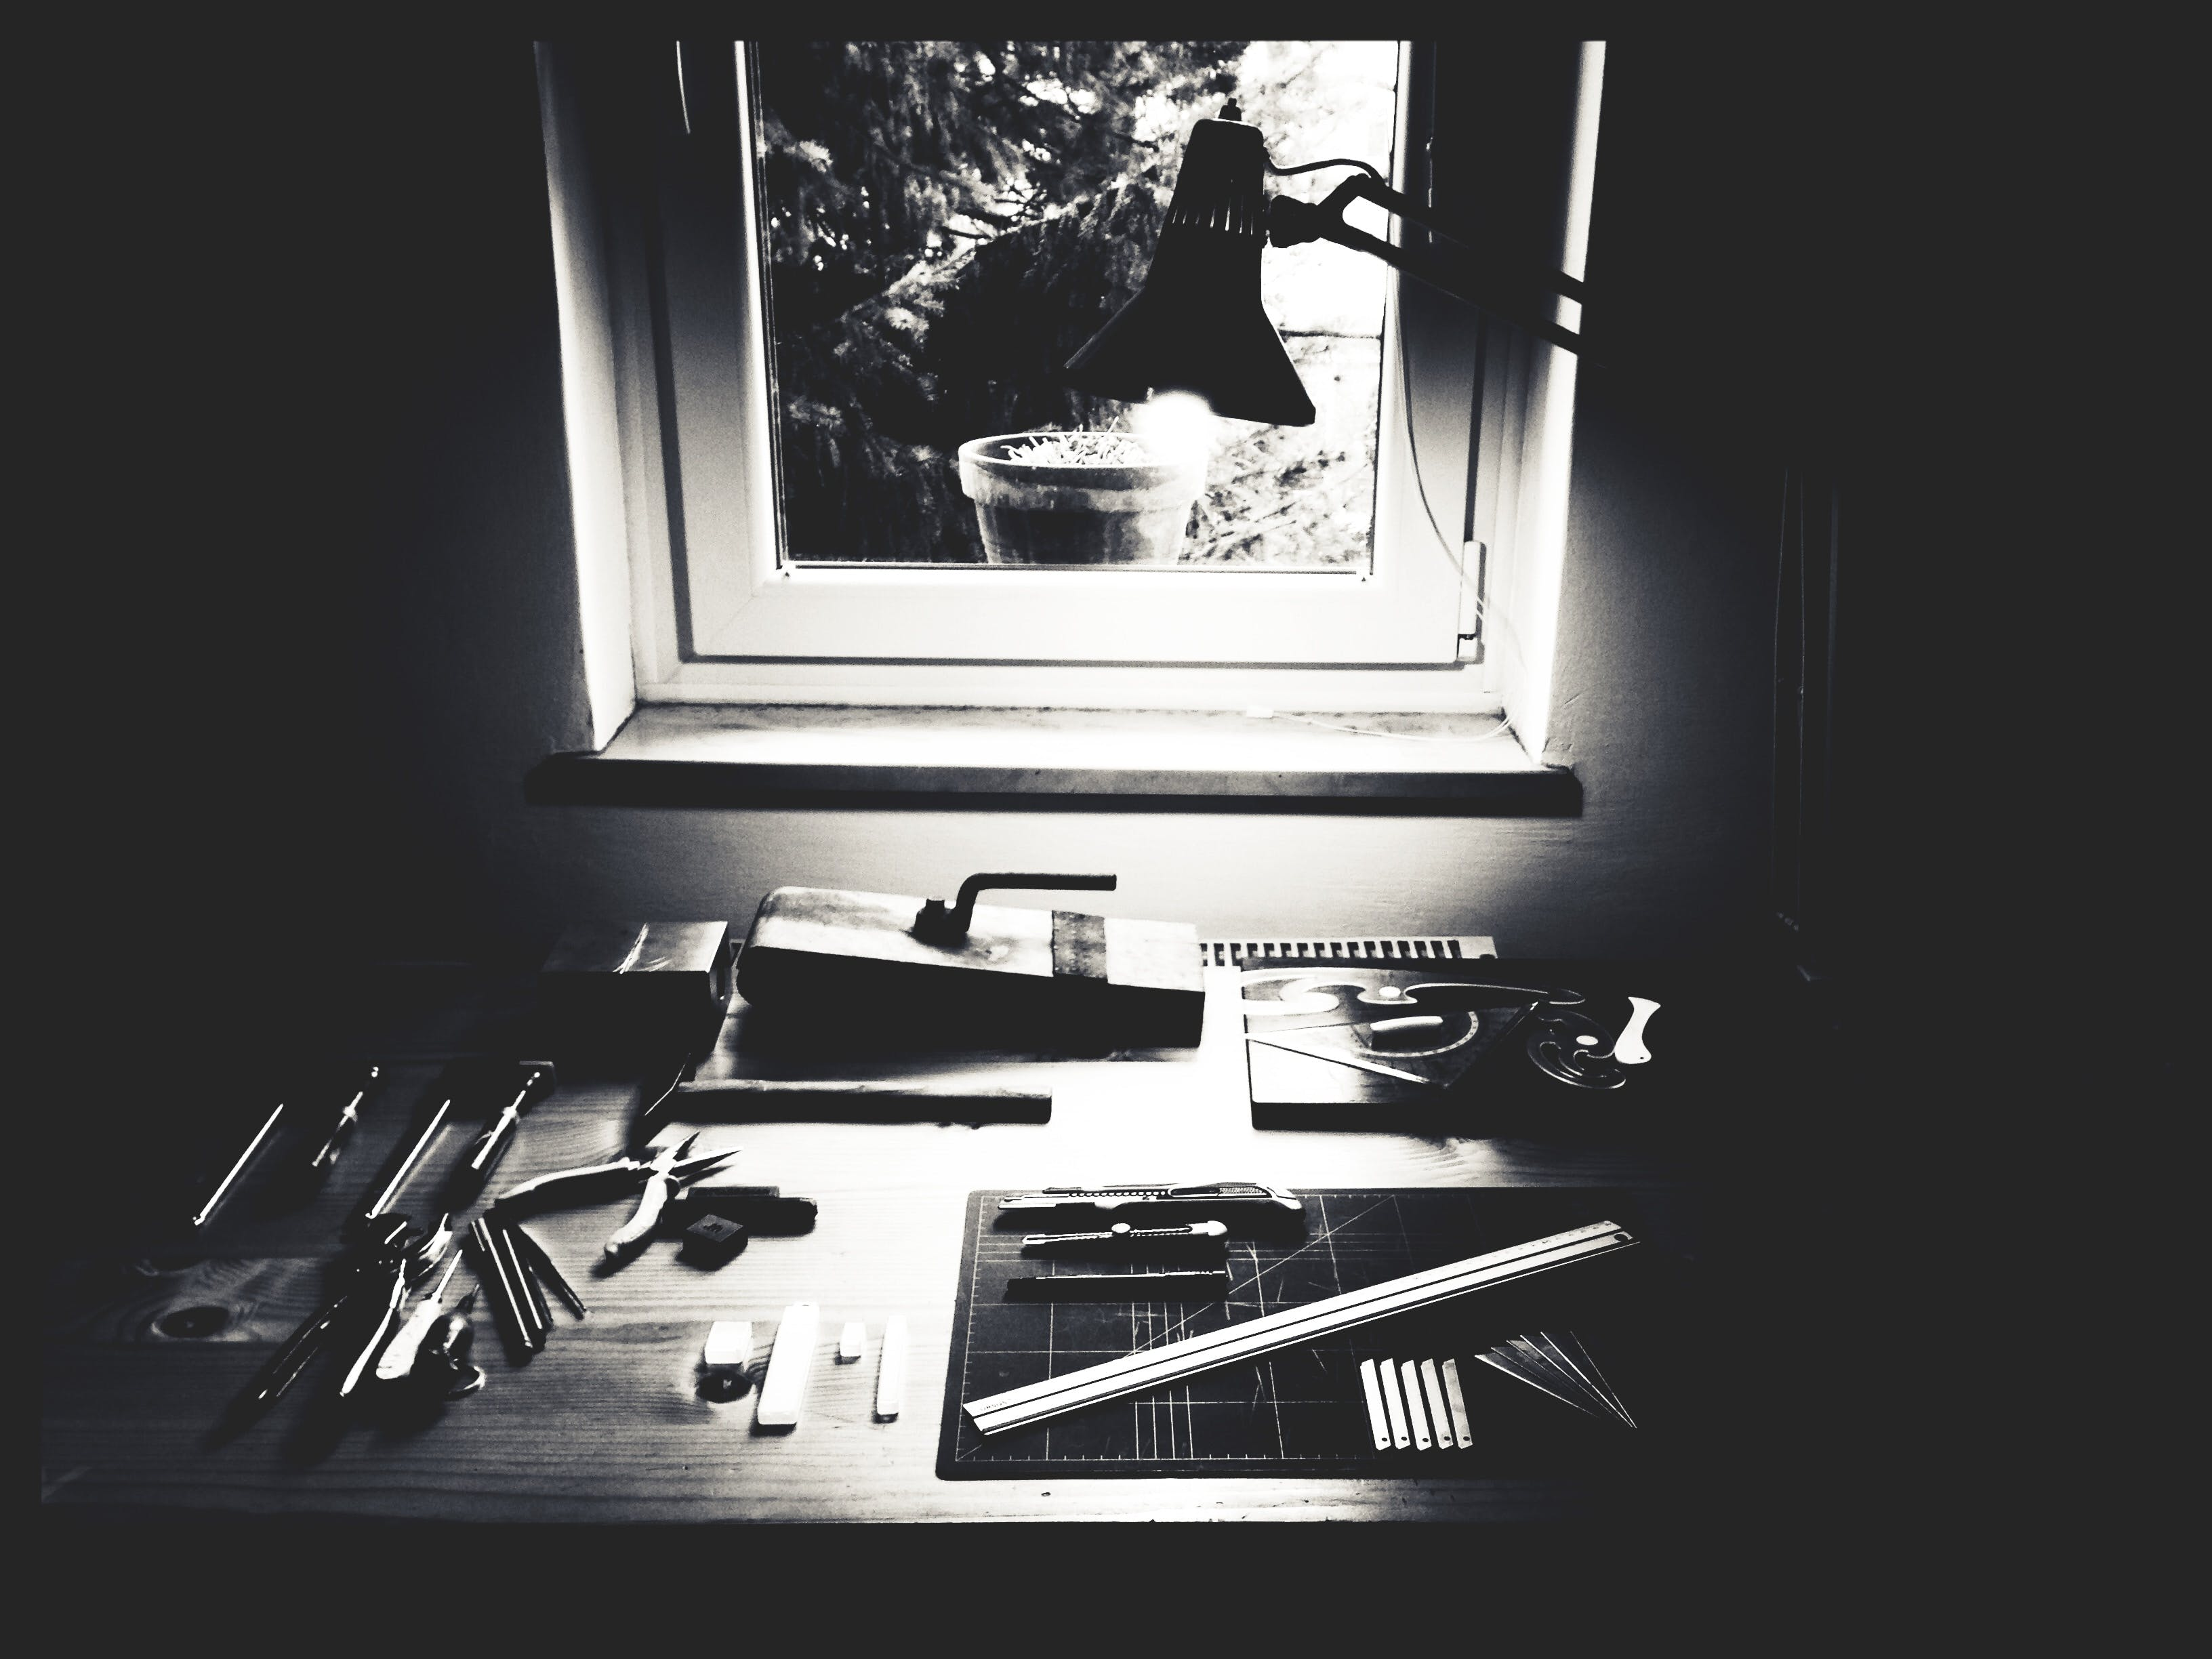 Tools on Table Grayscale Photography